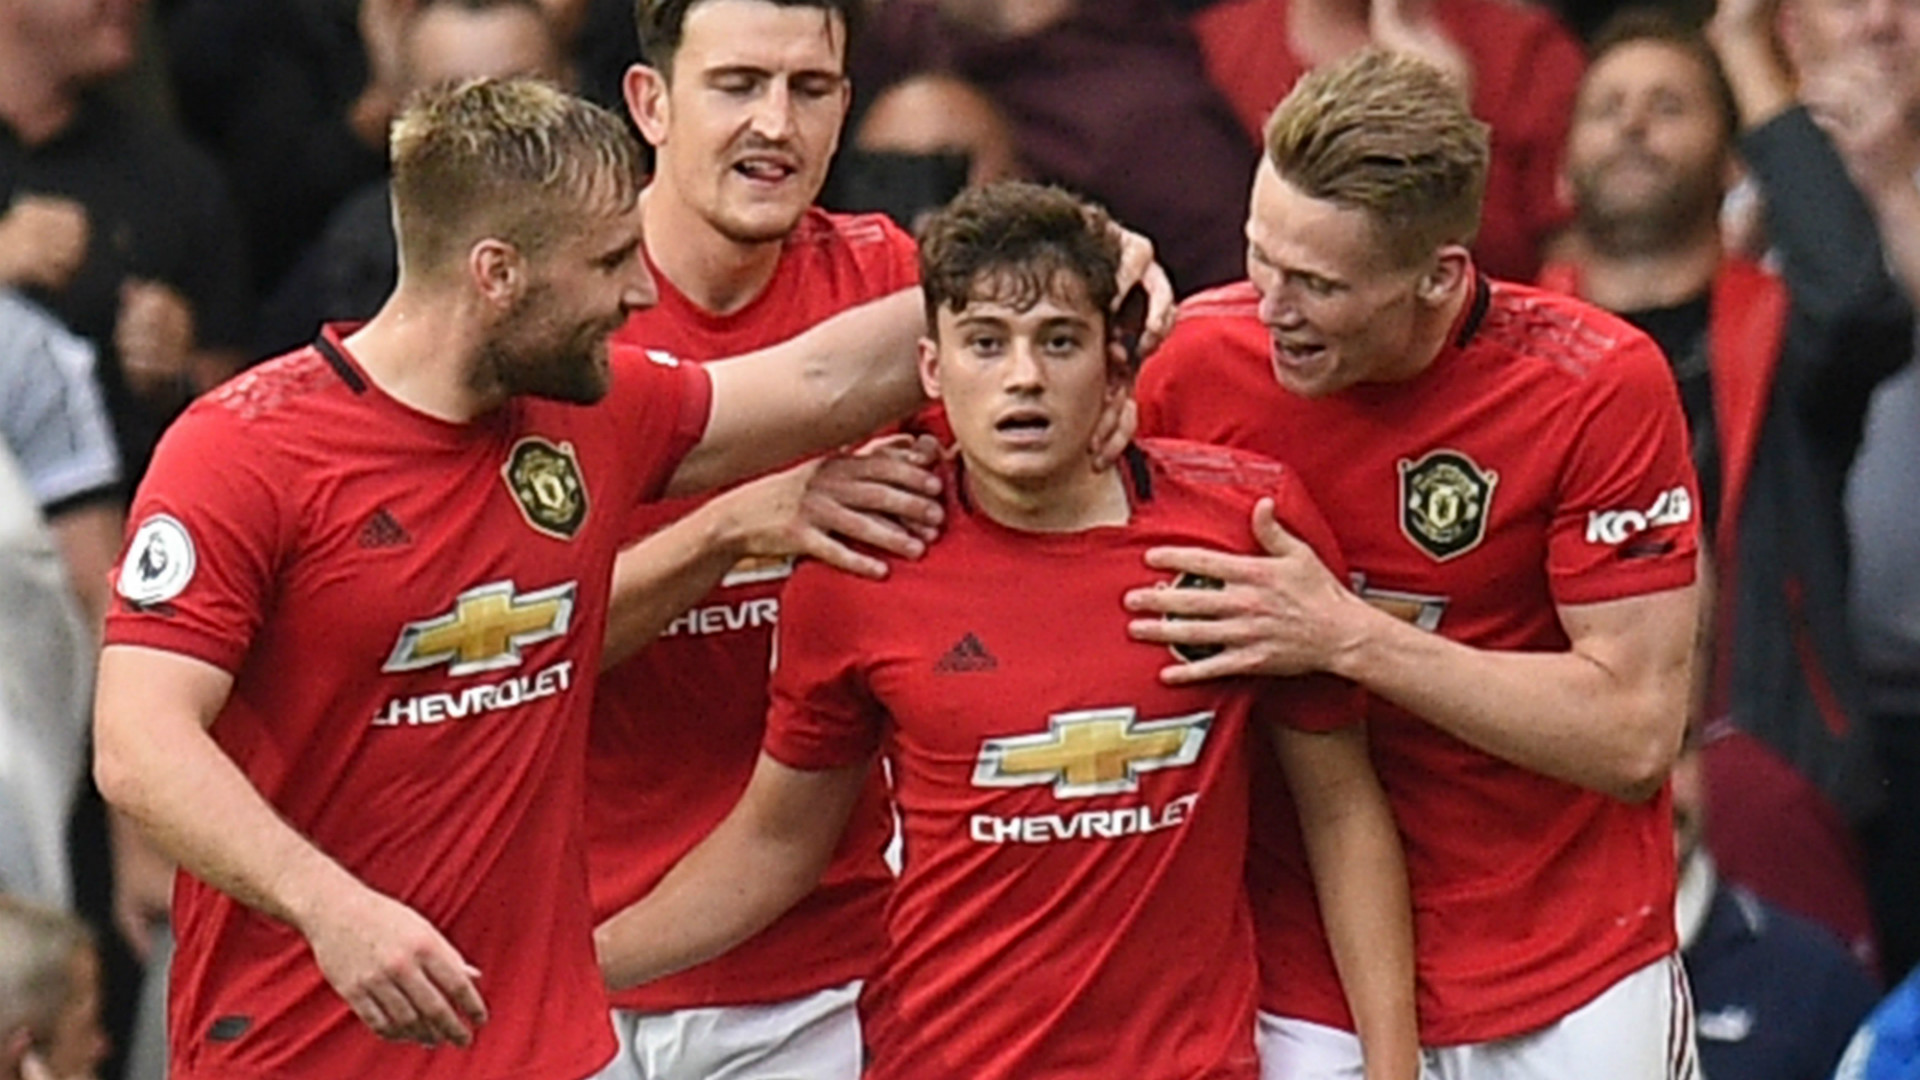 'They can be our 12th player' - James says Man Utd fans gave him goosebumps